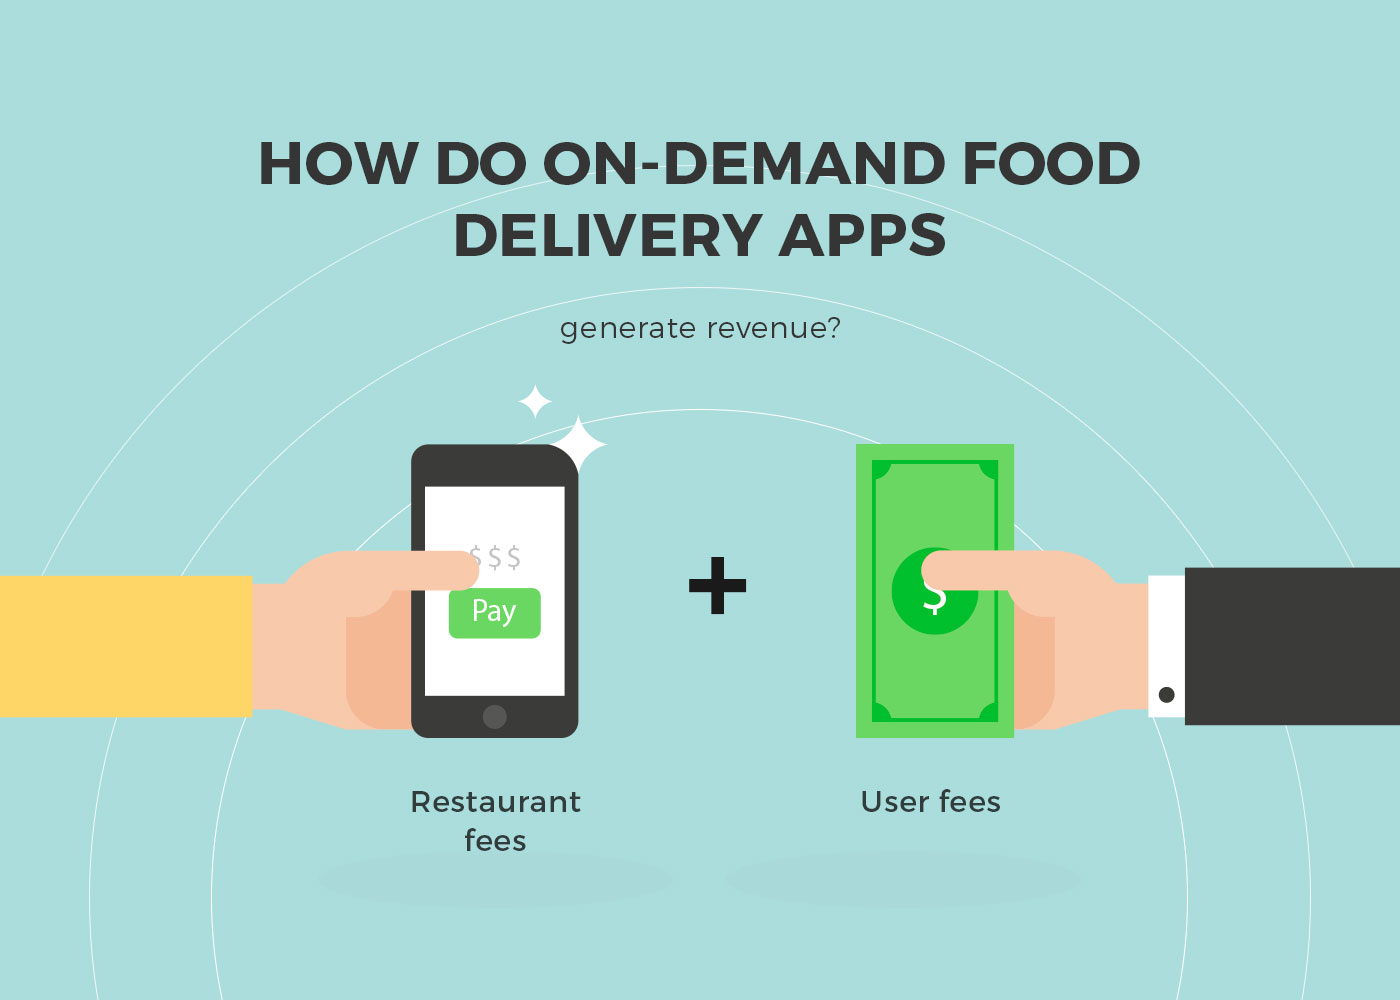 on-demand food delivery apps generate revenue